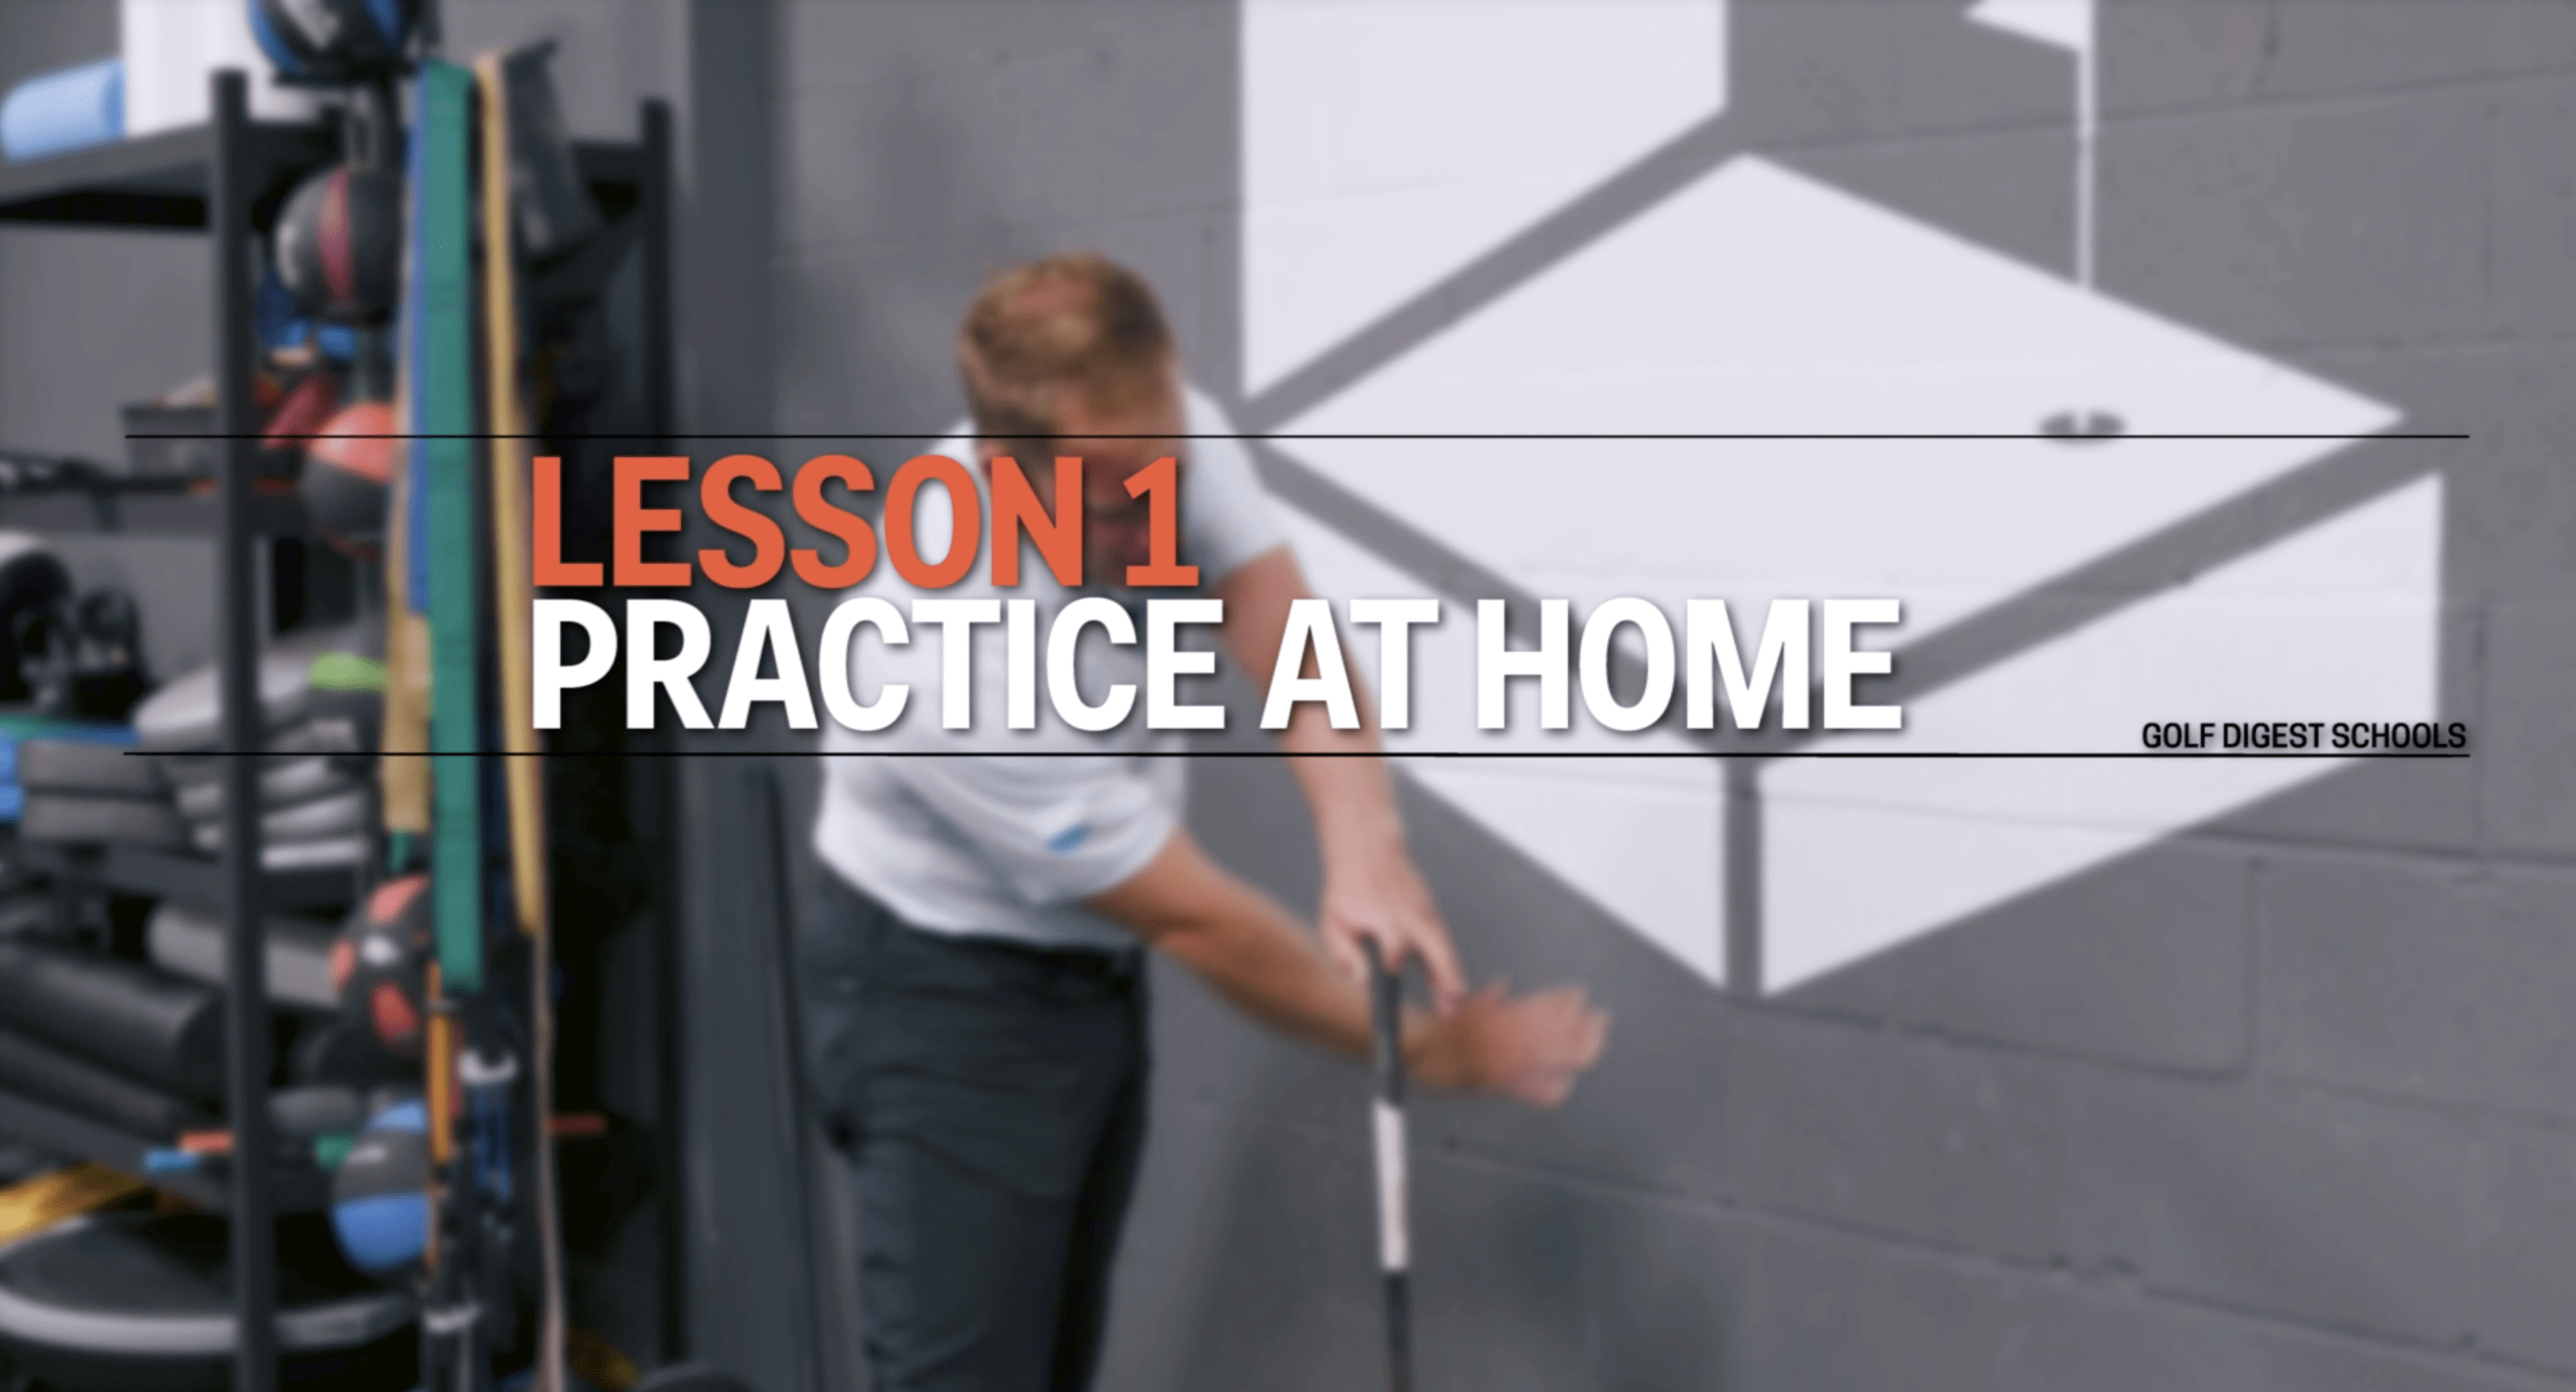 Lesson 1: Practice at Home